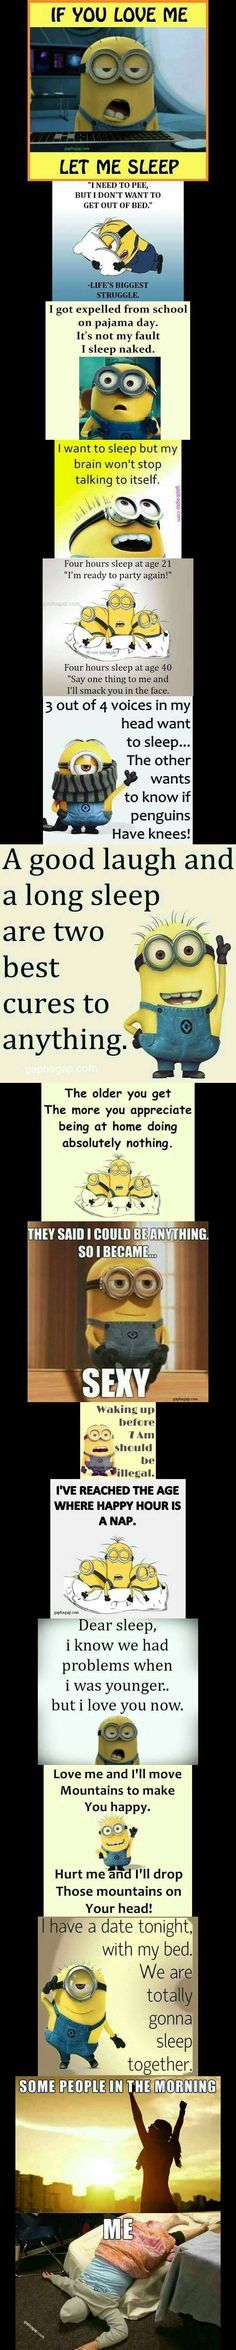 """Top 15 Funny Quotes About Sleeps By The <a class=""""pintag"""" href=""""/explore/Minions/"""" title=""""#Minions explore Pinterest"""">#Minions</a>"""